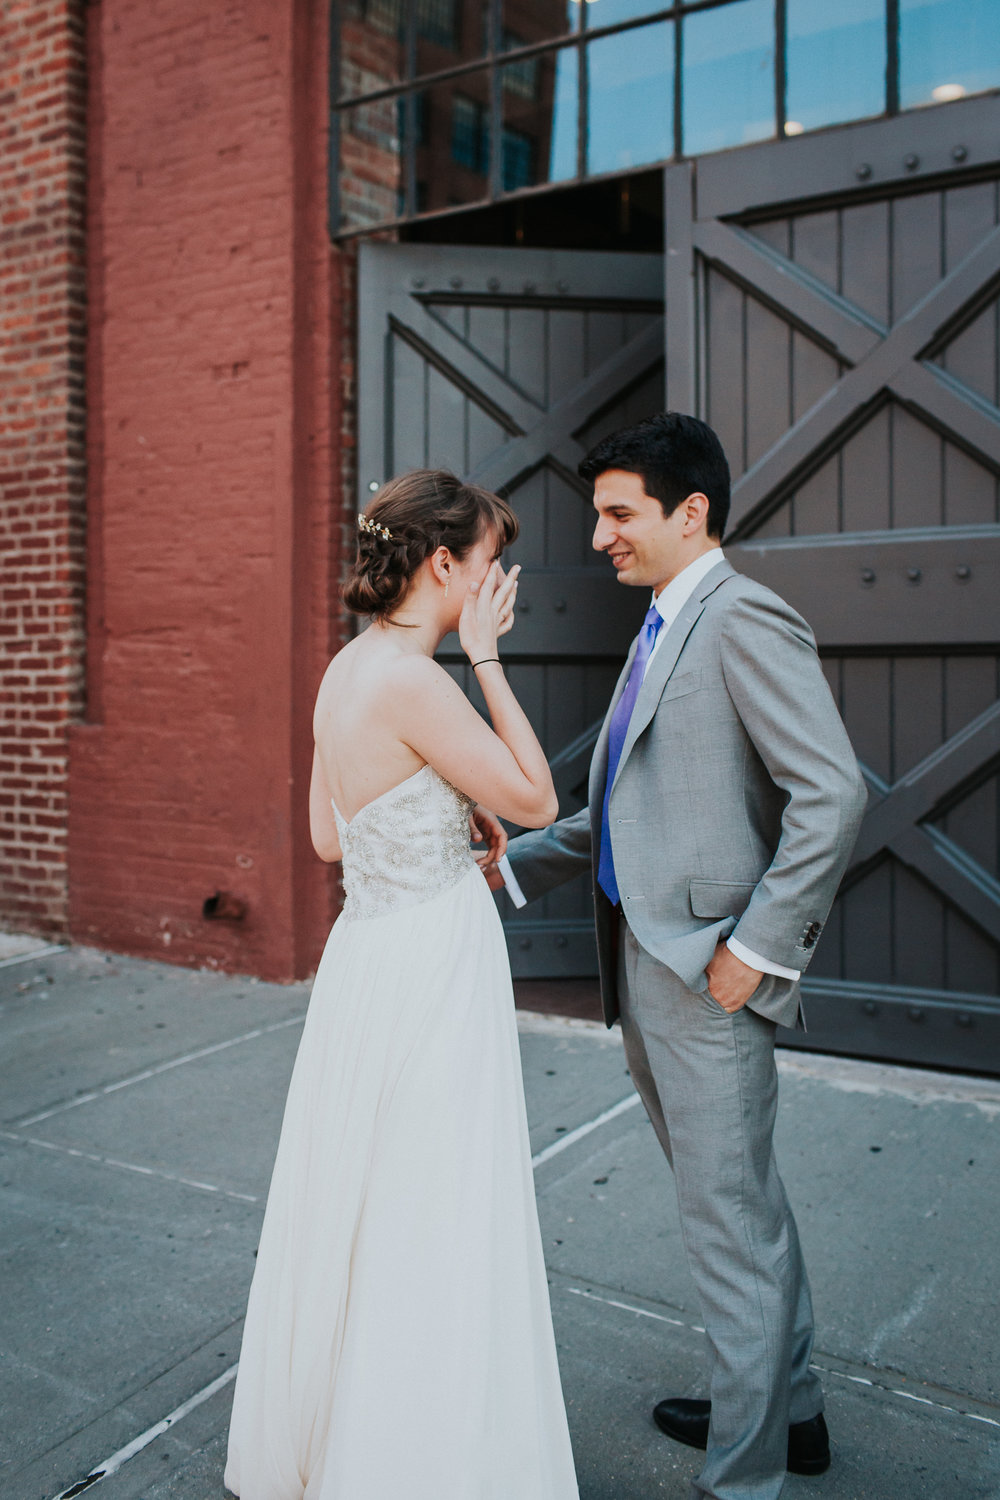 Dinosaur-Inspired-Brooklyn-Wedding-26-Bridge-New-York-Documentary-Wedding-Photographer-13.jpg